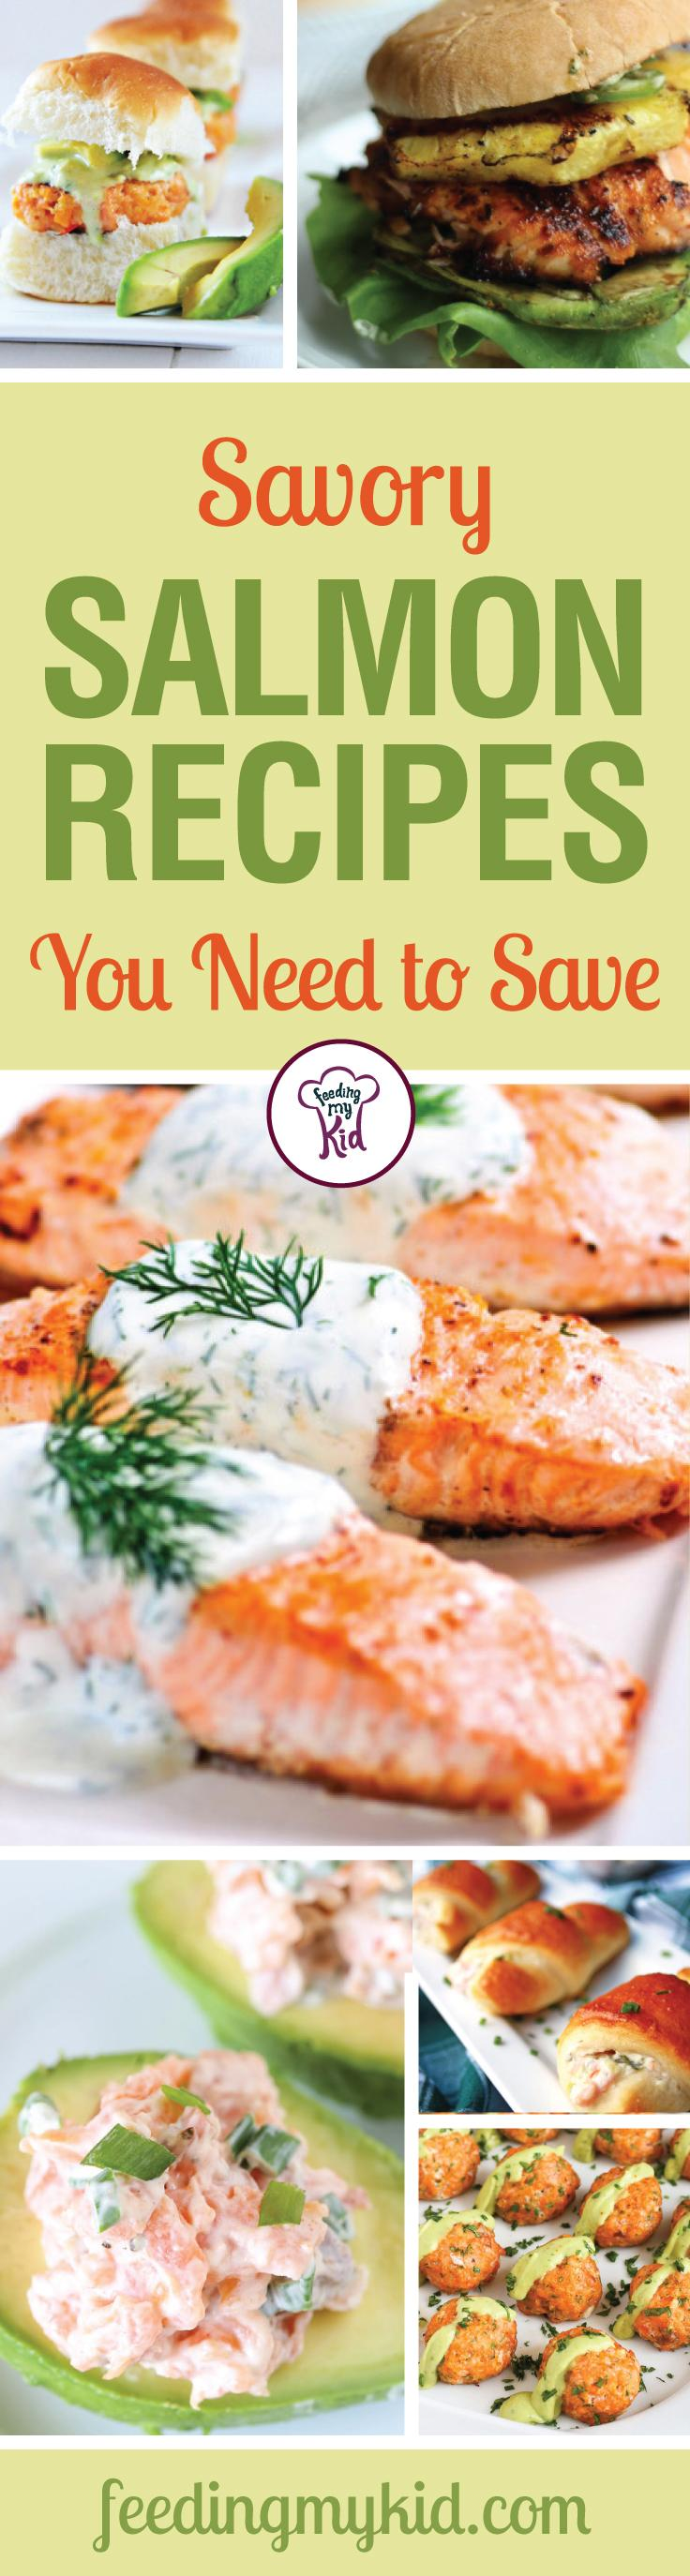 Savory Salmon Recipes You Need to Save! - Try these amazing recipes! From a Ginger Garlic Baked Salmon Recipe to a Smoked Salmon Spread Recipe; these are sure to please even the pickiest of eaters!